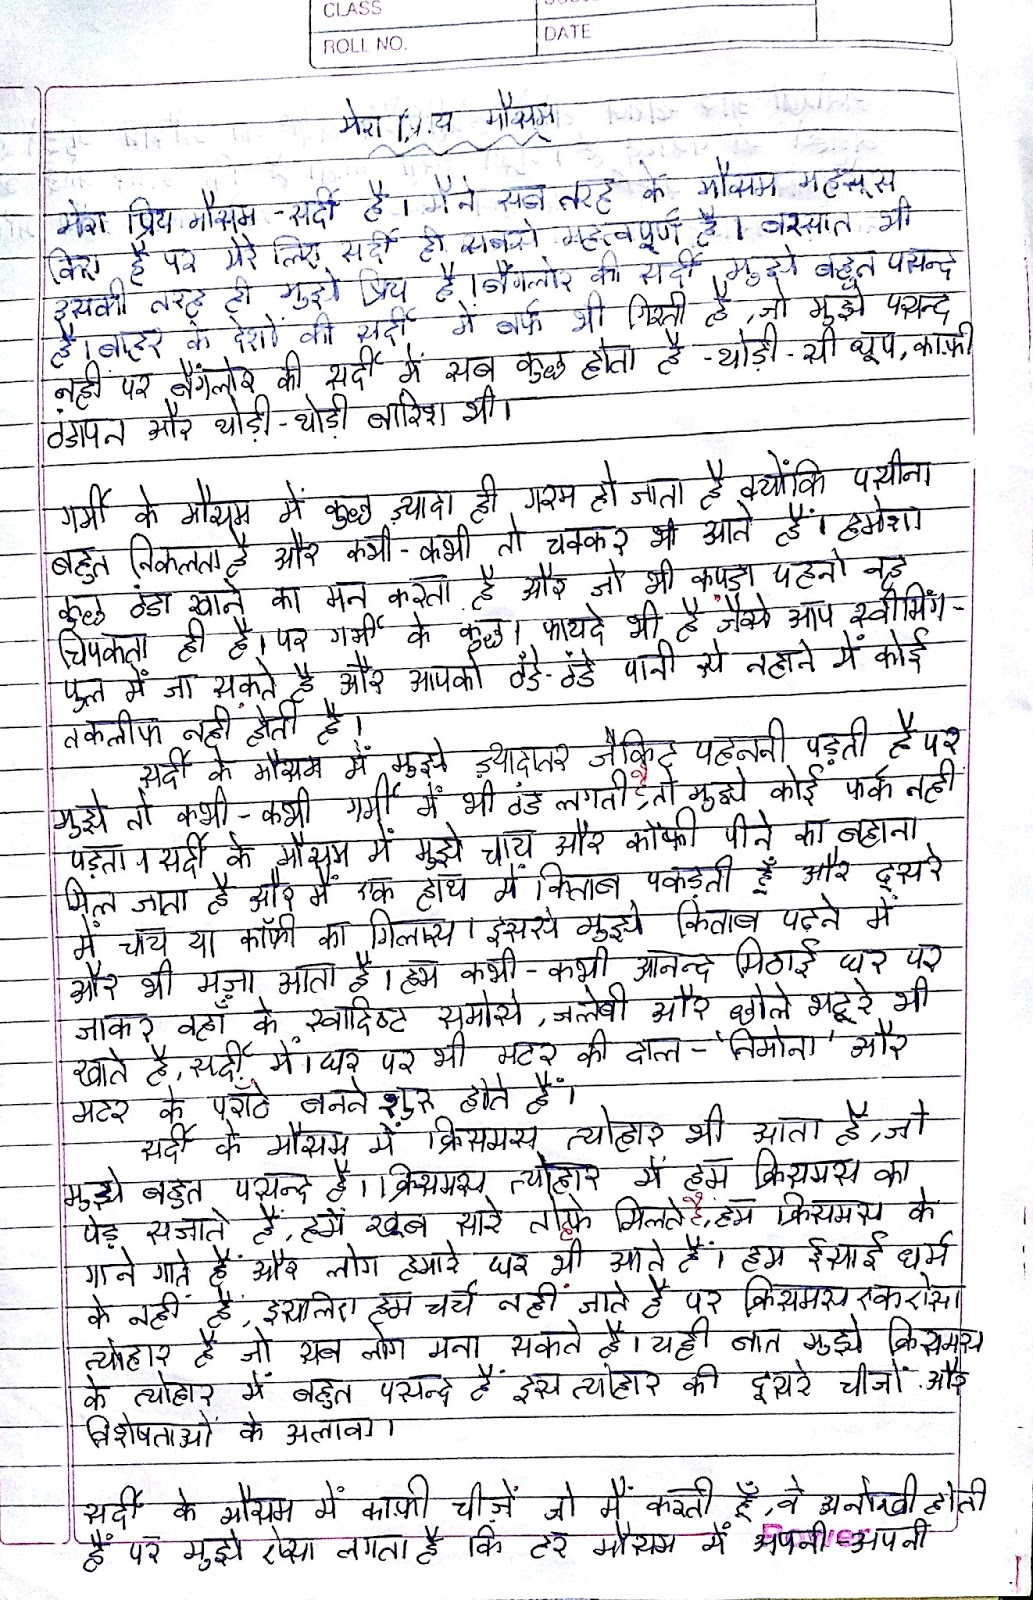 essay on my school for class 1 Browse and read my school essay for class 1 my school essay for class 1 inevitably, reading is one of the requirements to be undergone to improve the performance and.